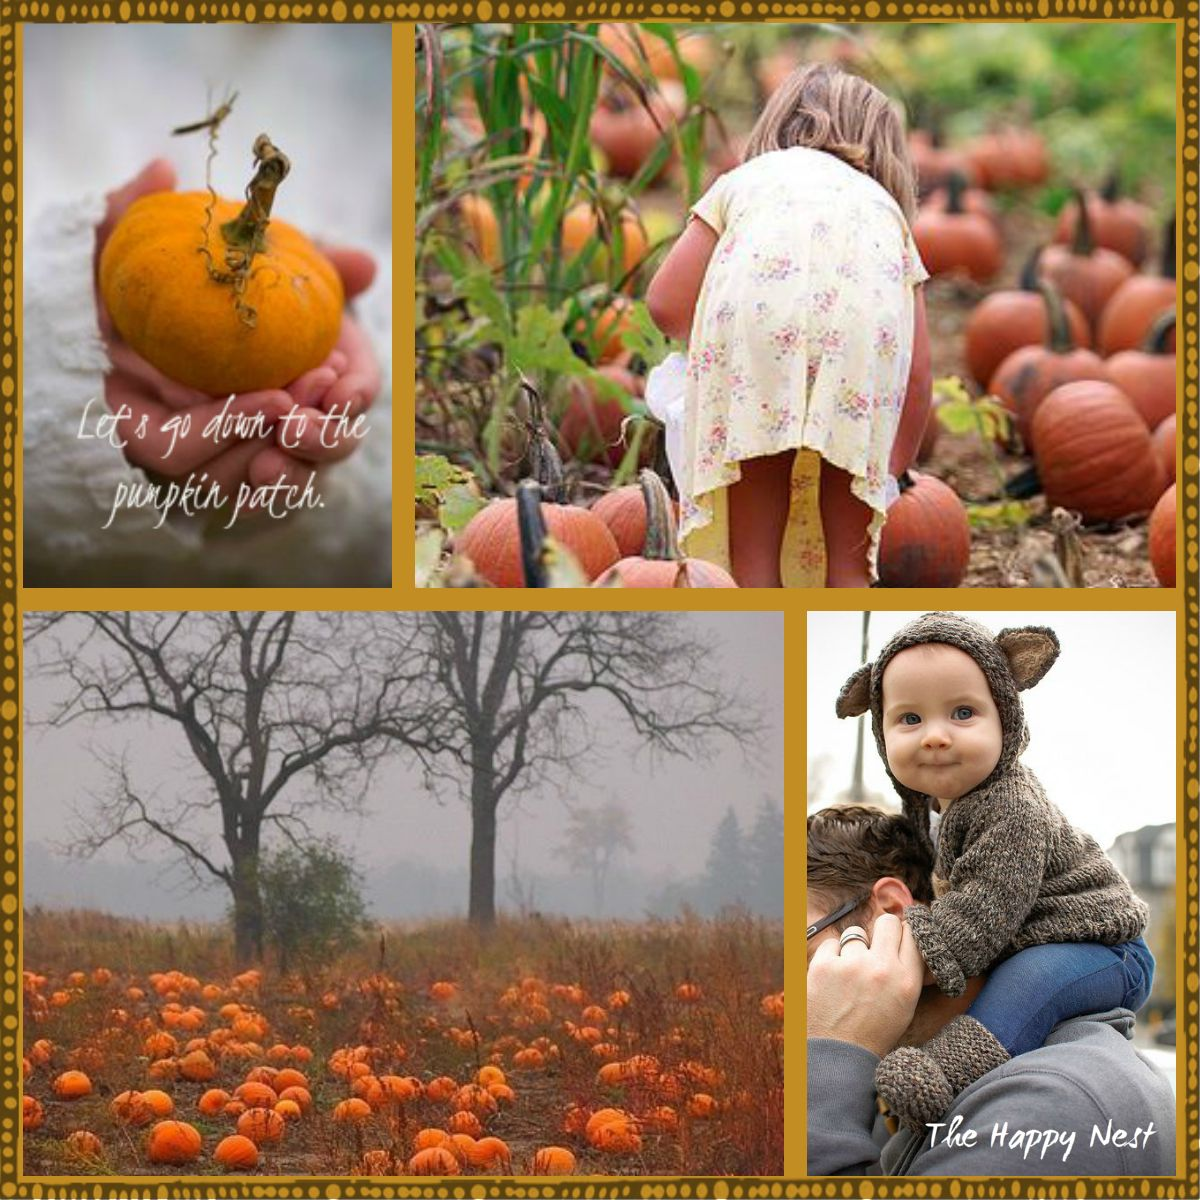 Let's go down to the pumpkin patch.